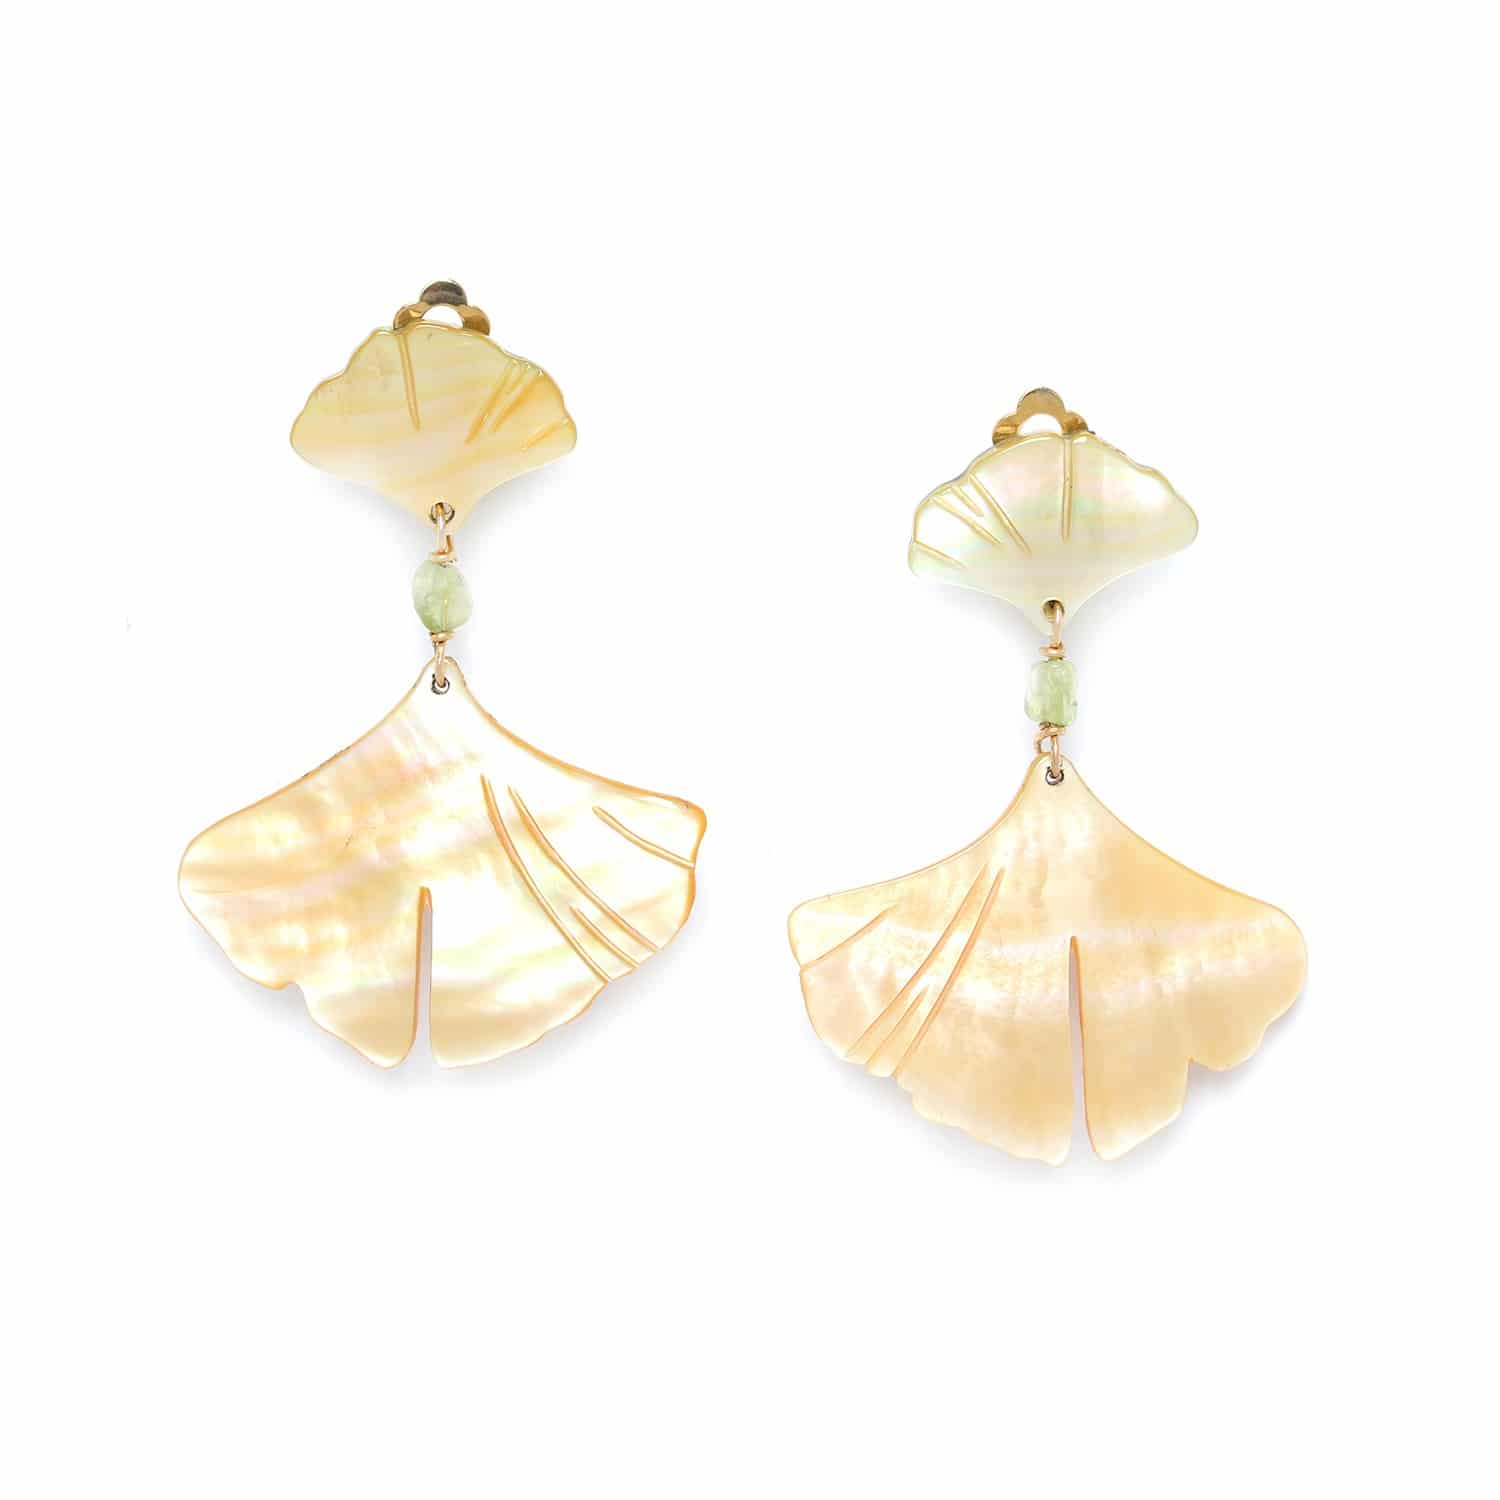 GINKGO 2 leaf clip earrings